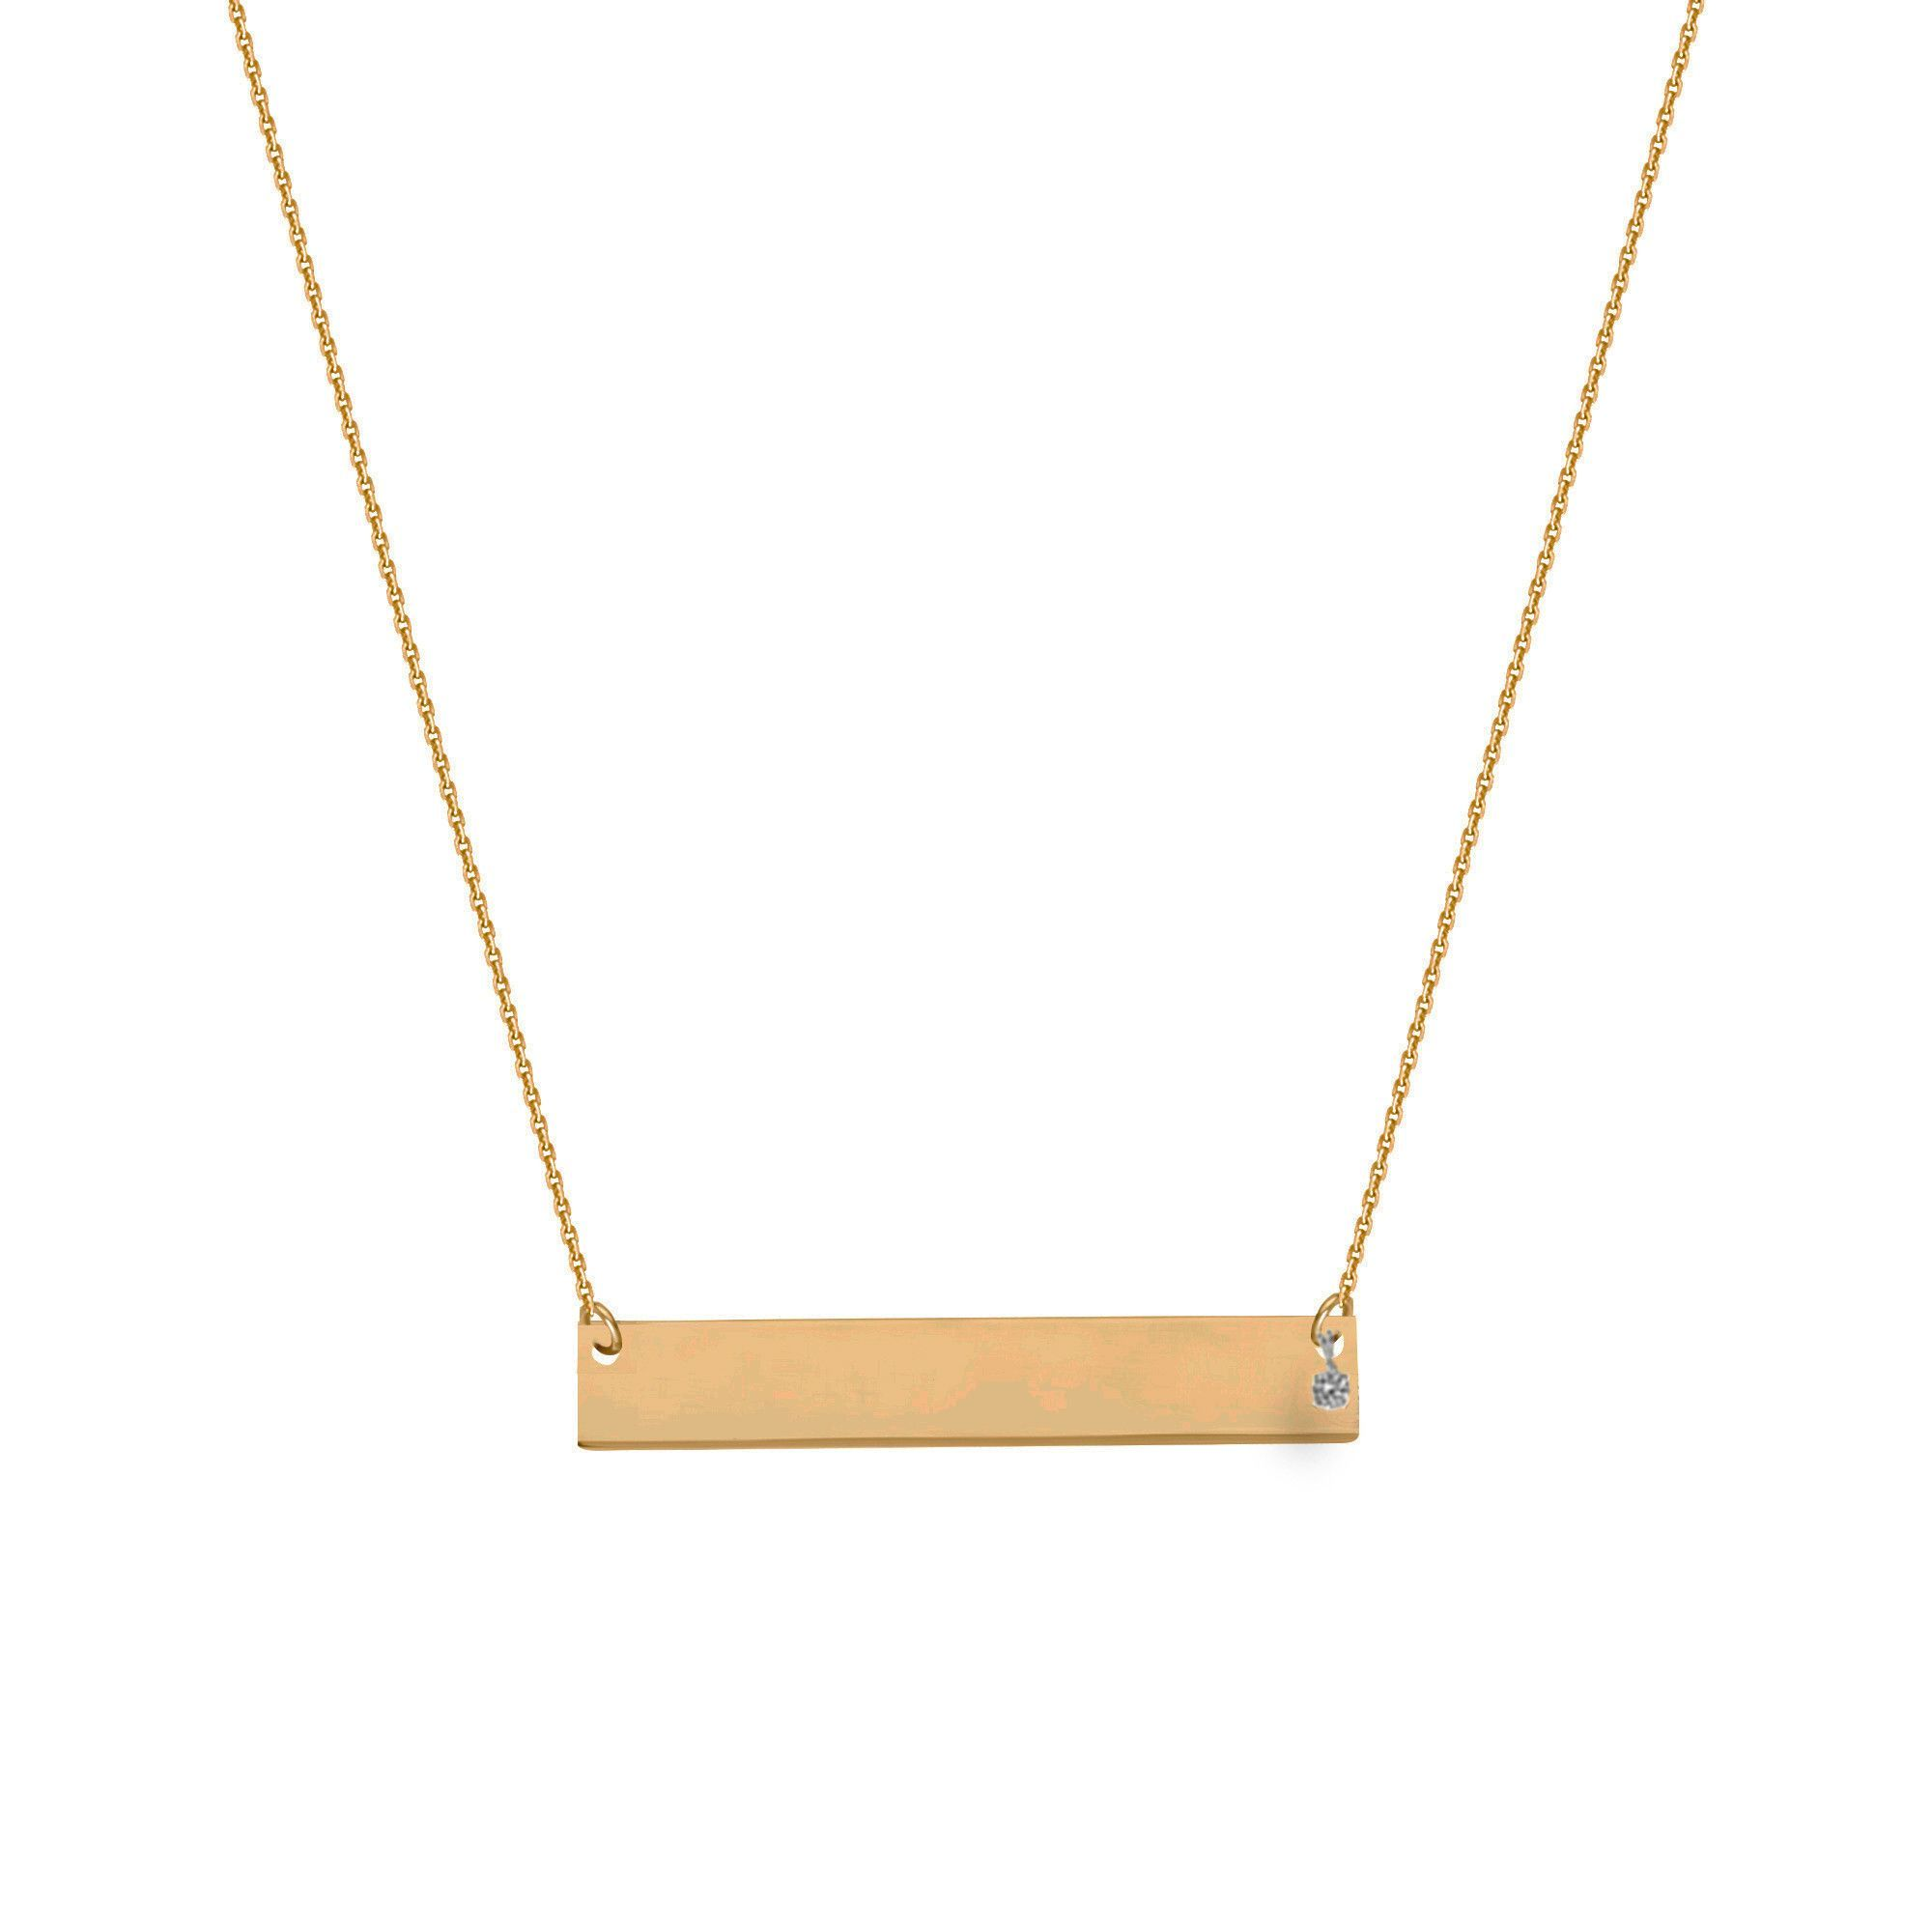 ef jumbo normal jewelry lyst collection bar gold diamond gallery pendant yellow product necklace